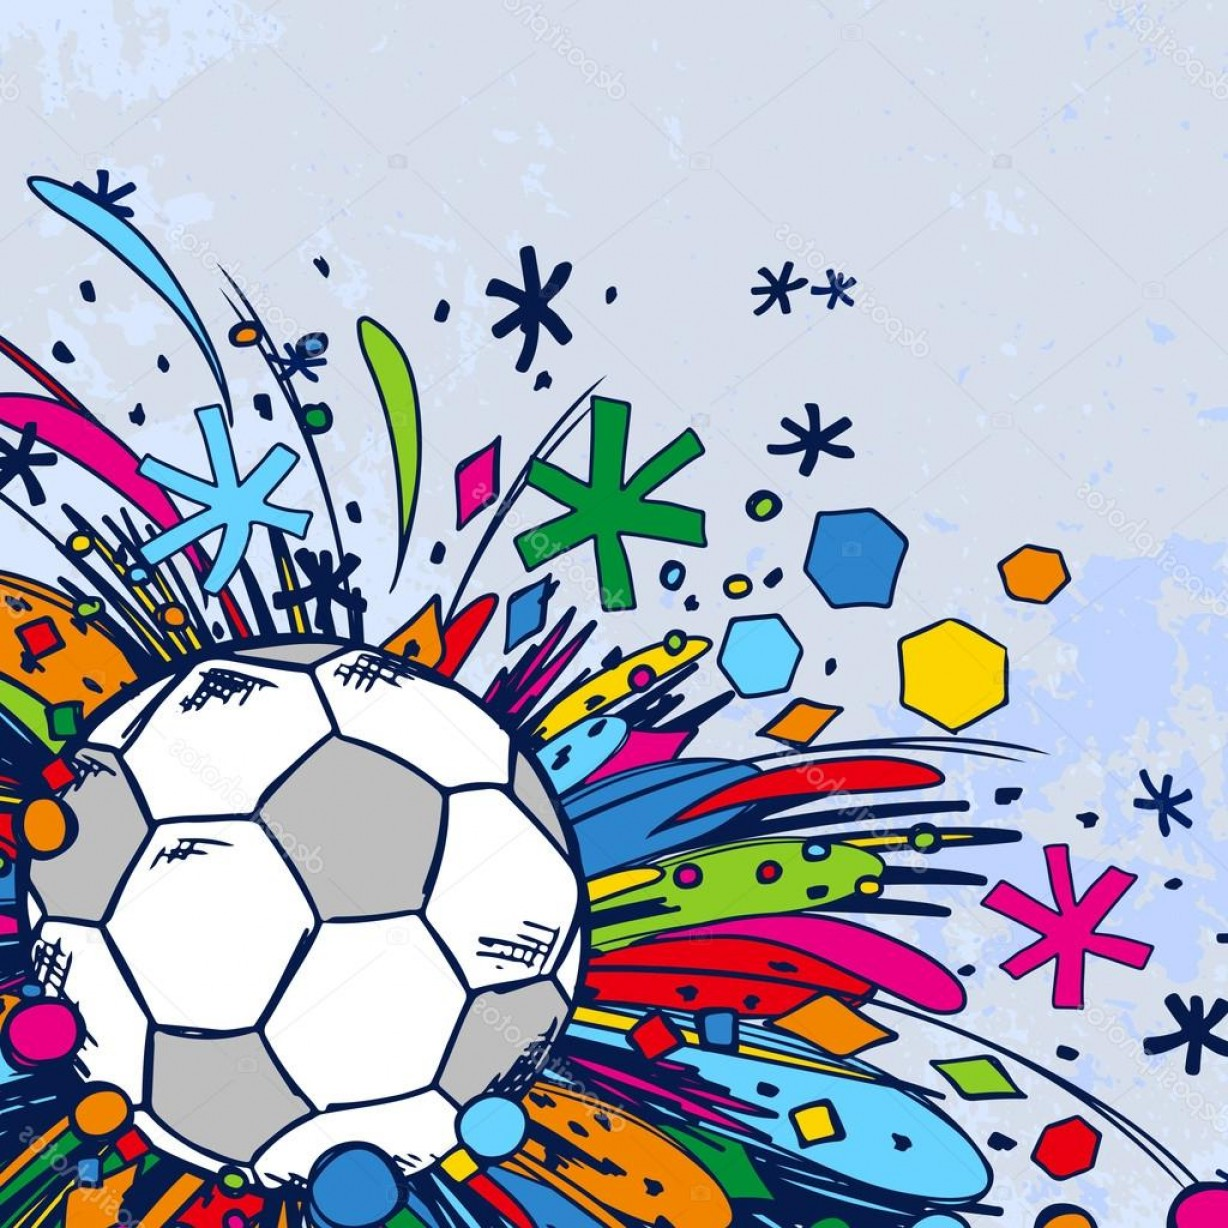 Football Vector Wallpaper: Stock Illustration Football Doodle Ornament Soccer Background